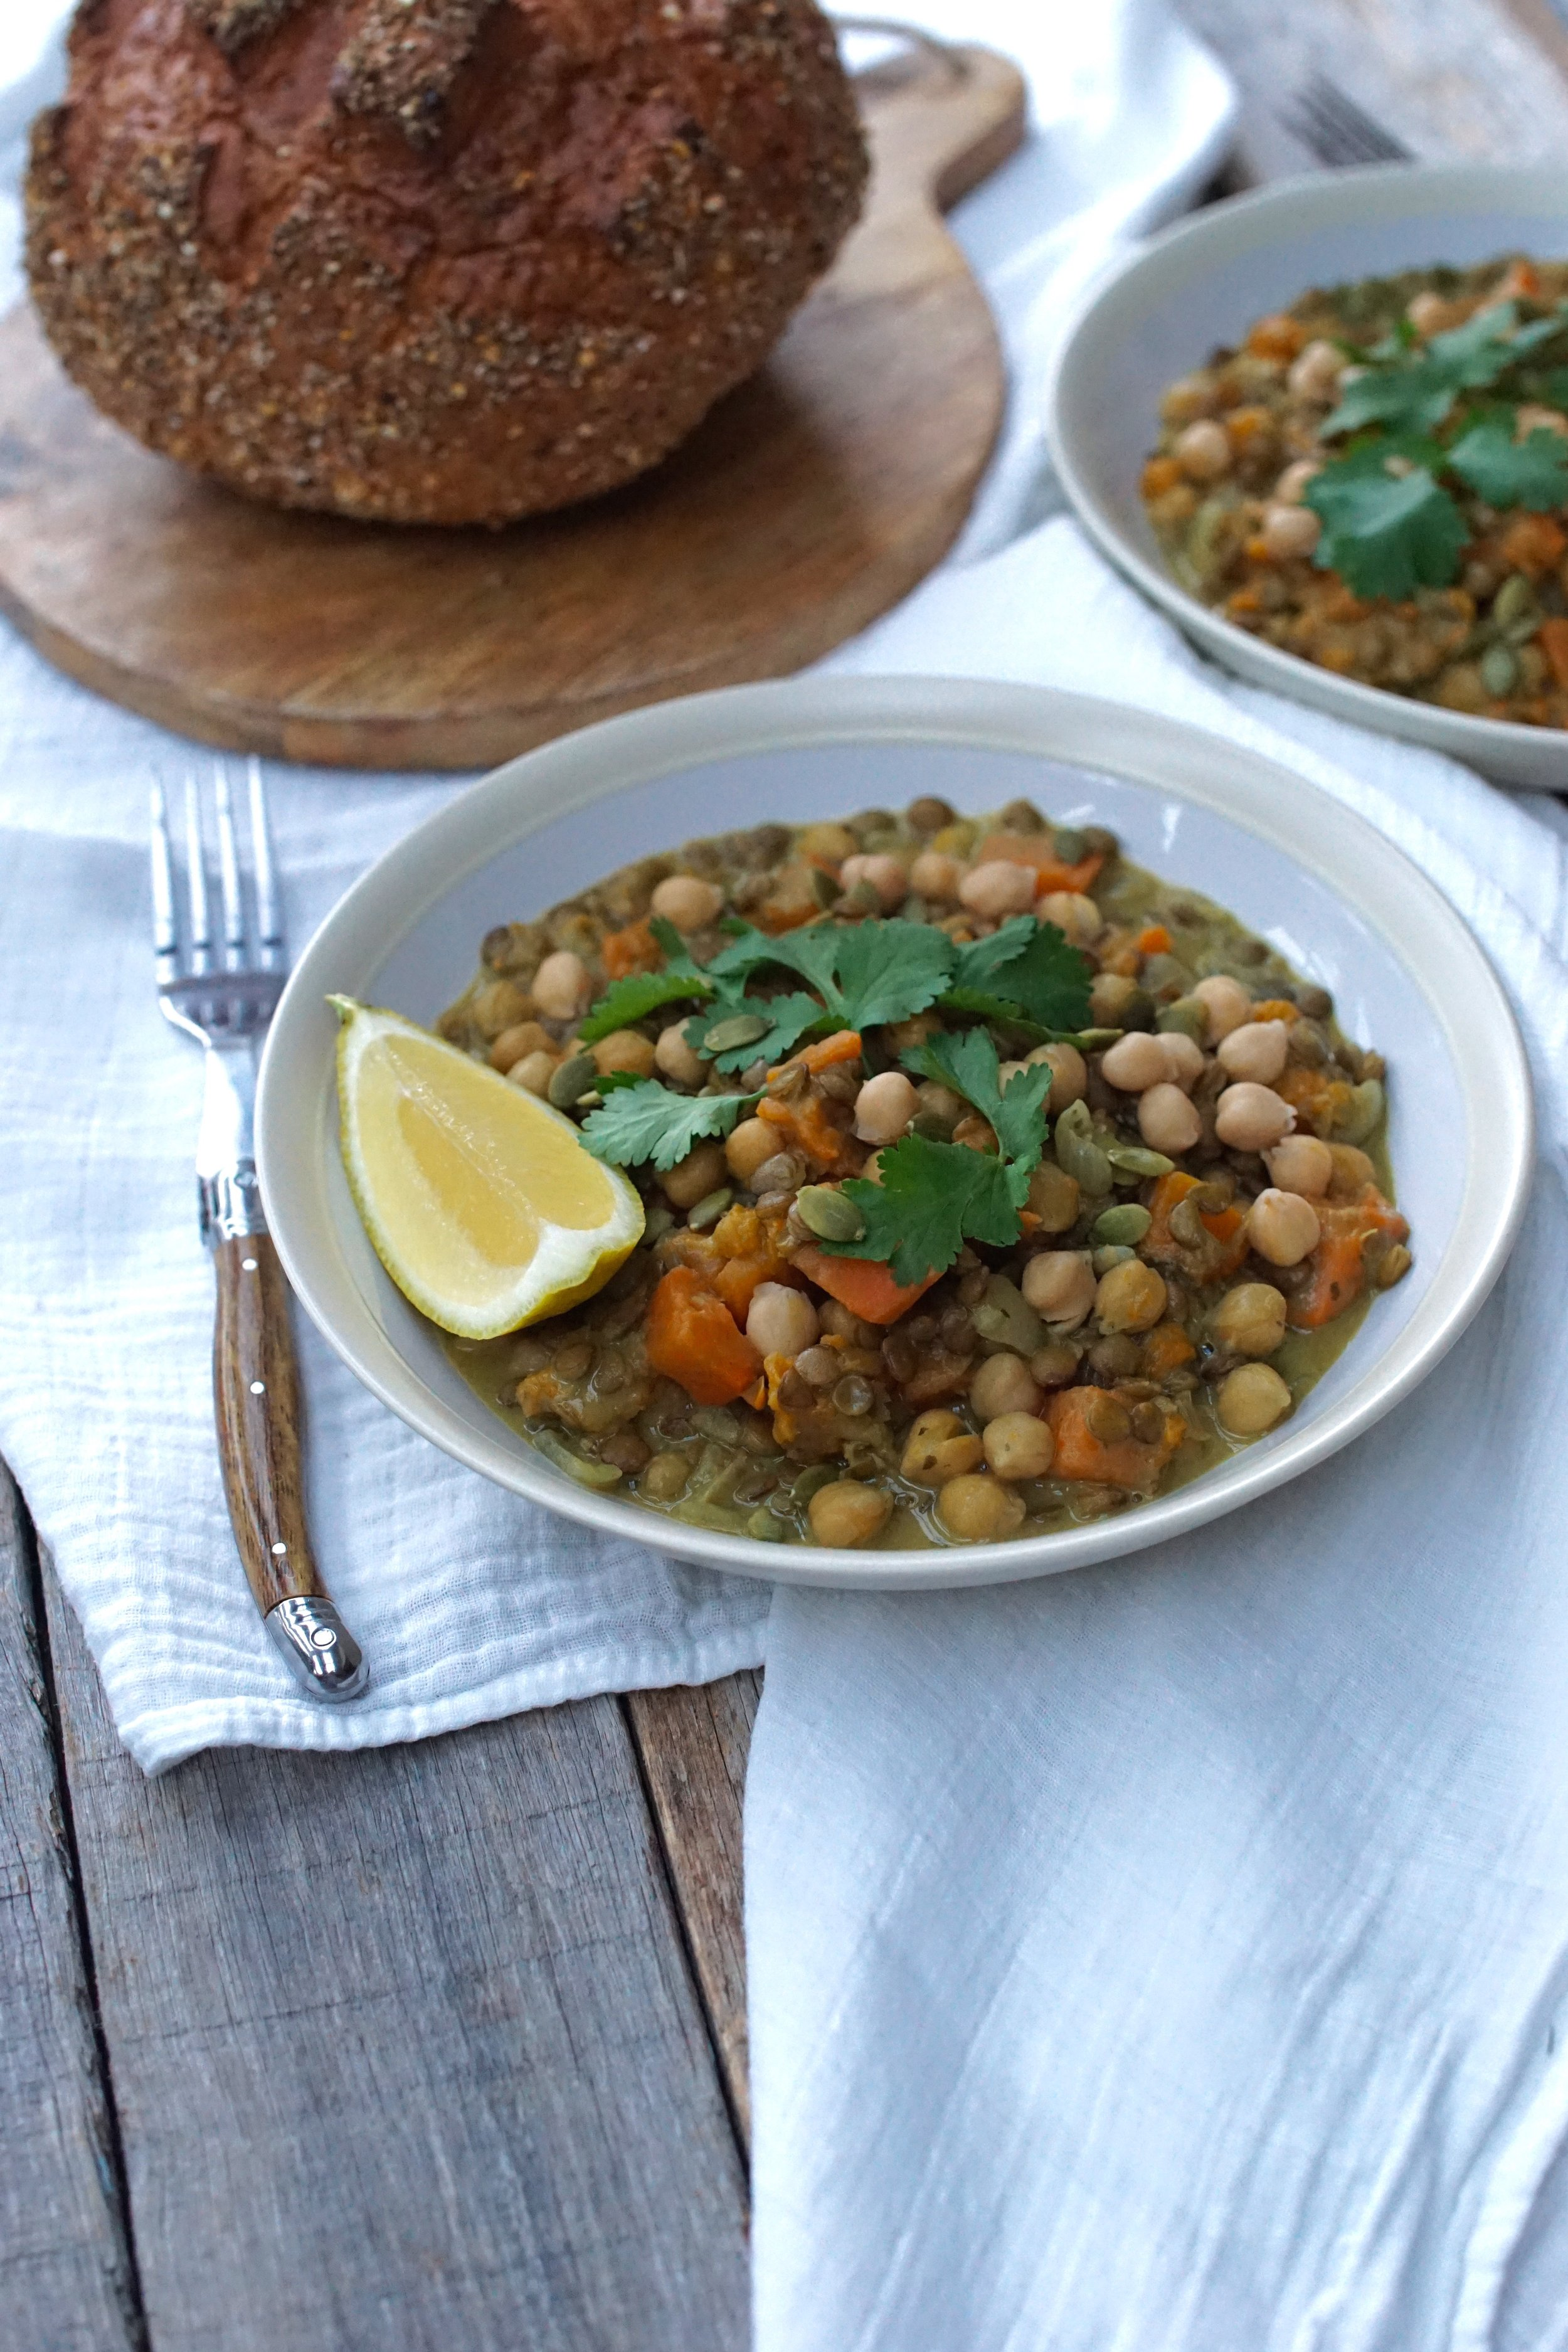 Pumpkin, Chickpea and Turmeric Stew